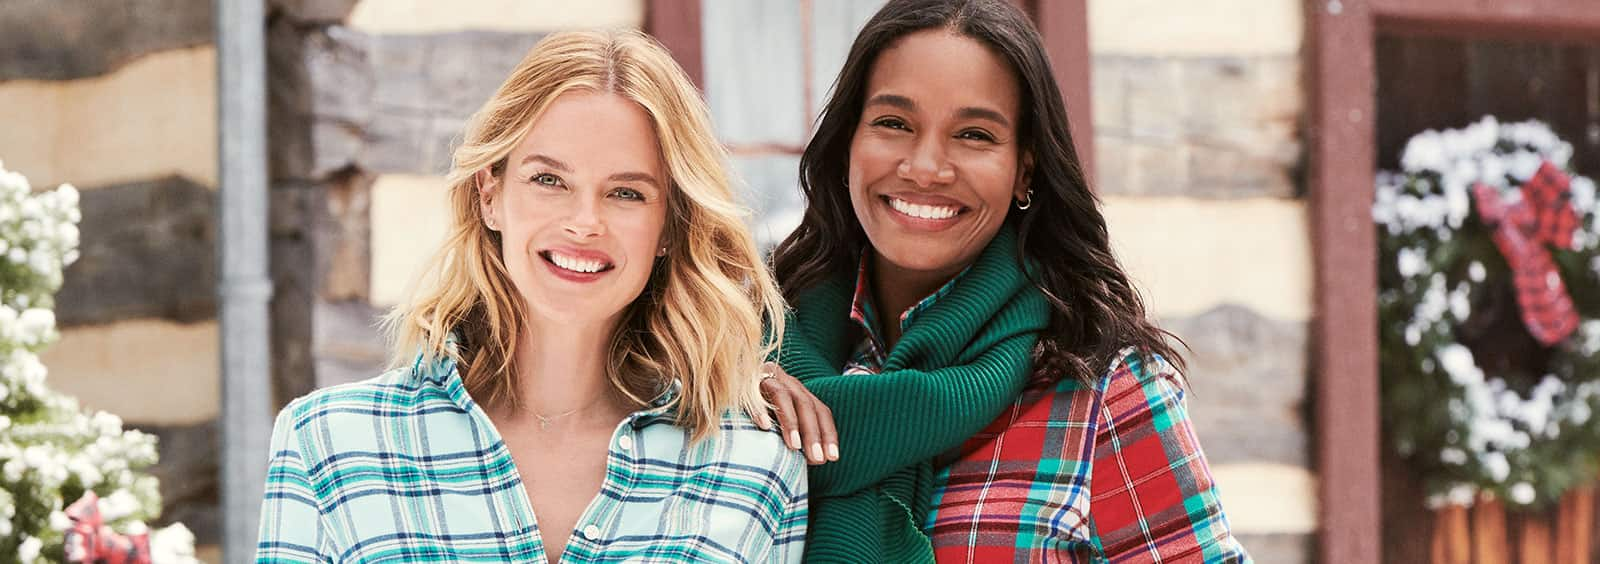 What's the Difference Between Flannel and Plaid Shirts?